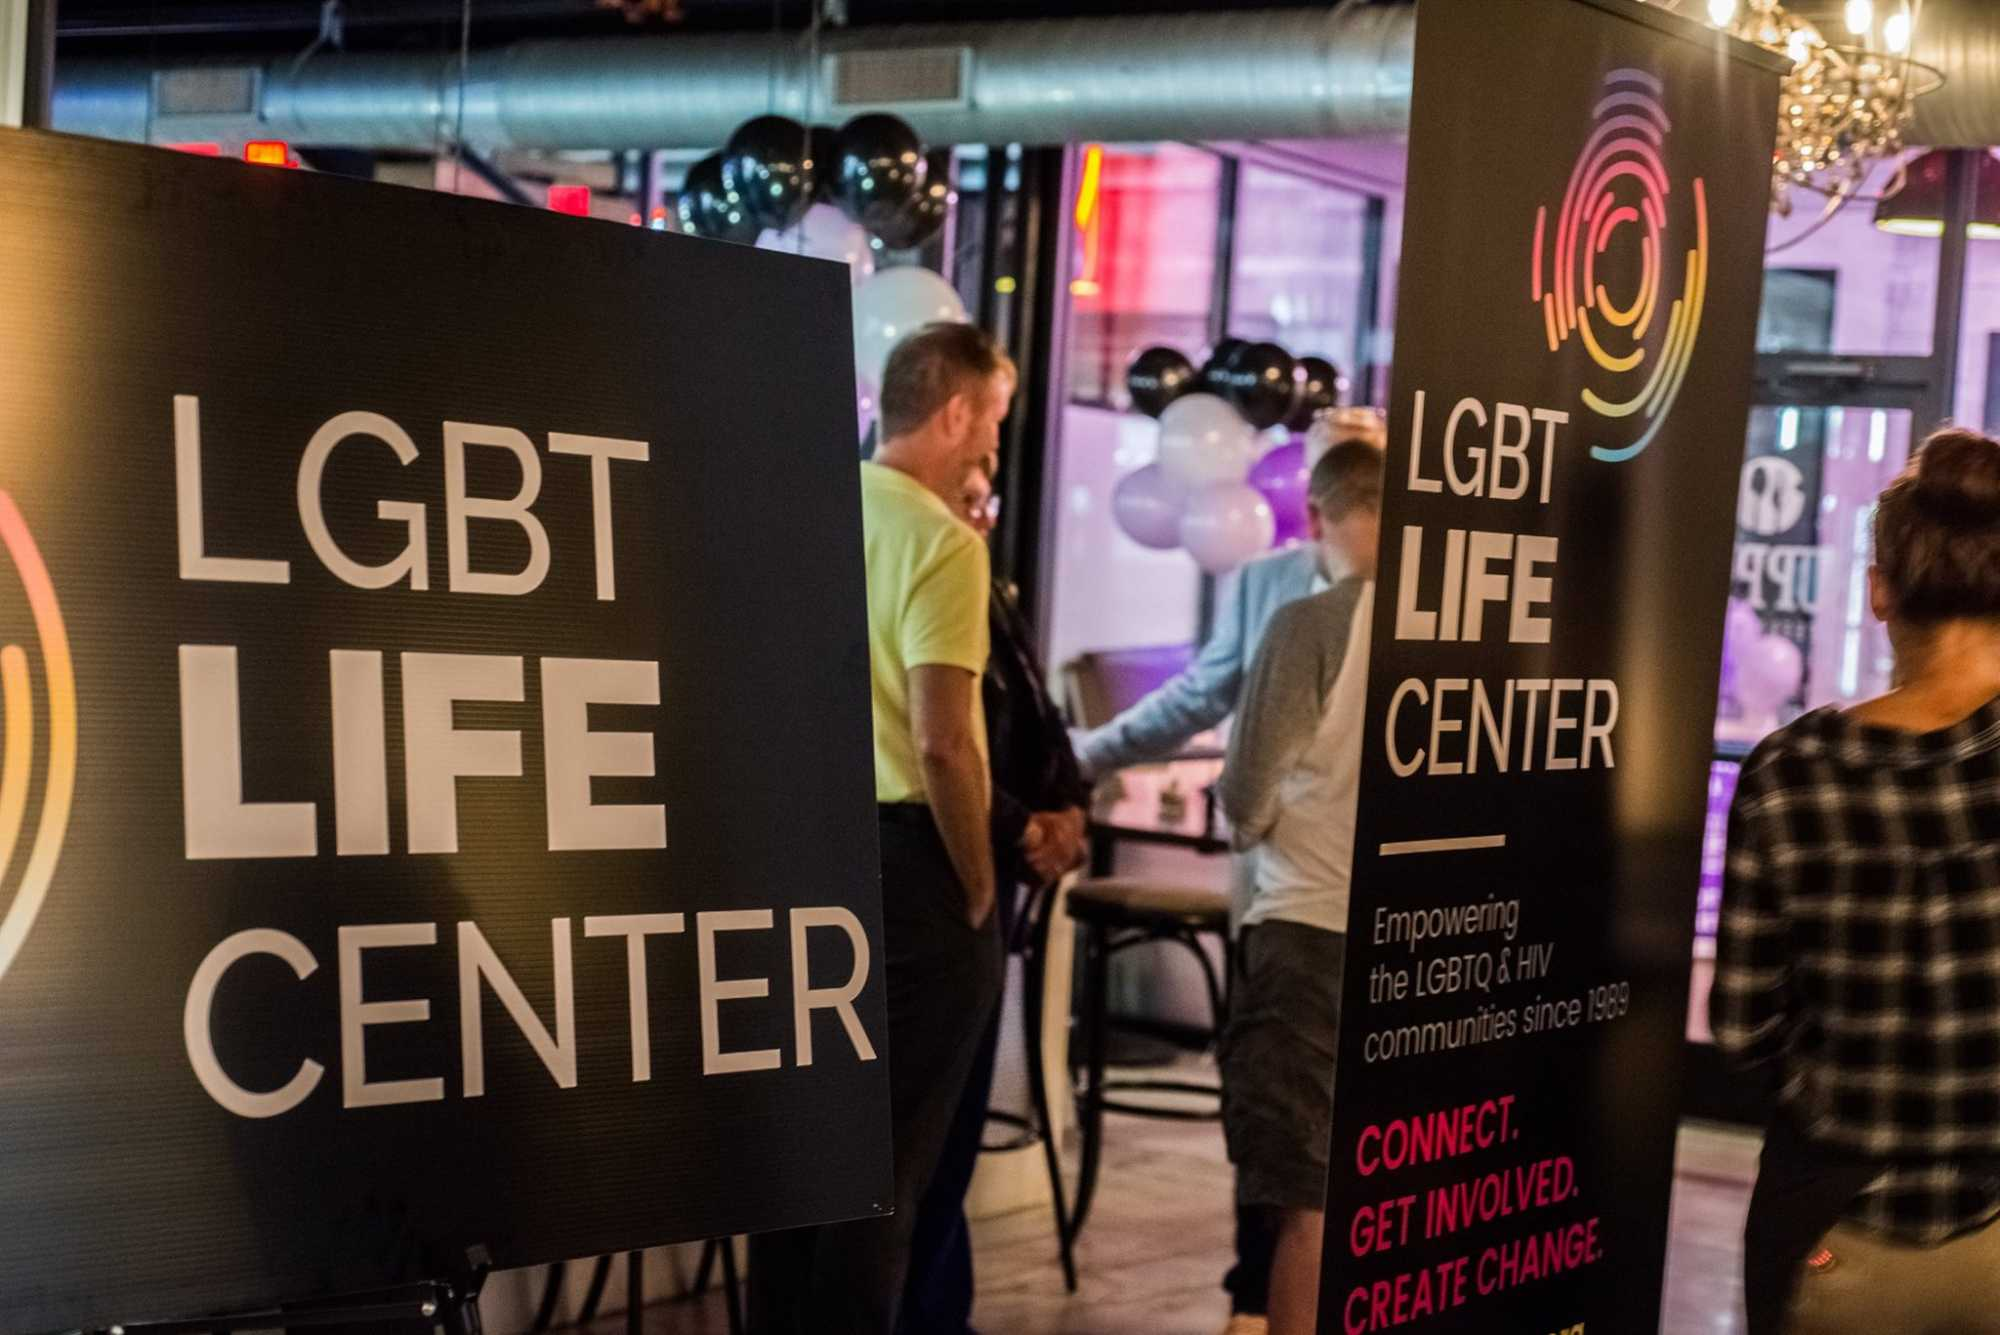 life in the lgbt community and Looking for lgbt friendly spots in the virtual world second life here's a list of  places to hang out and meet people in the gay, lesbian, bisexual and.